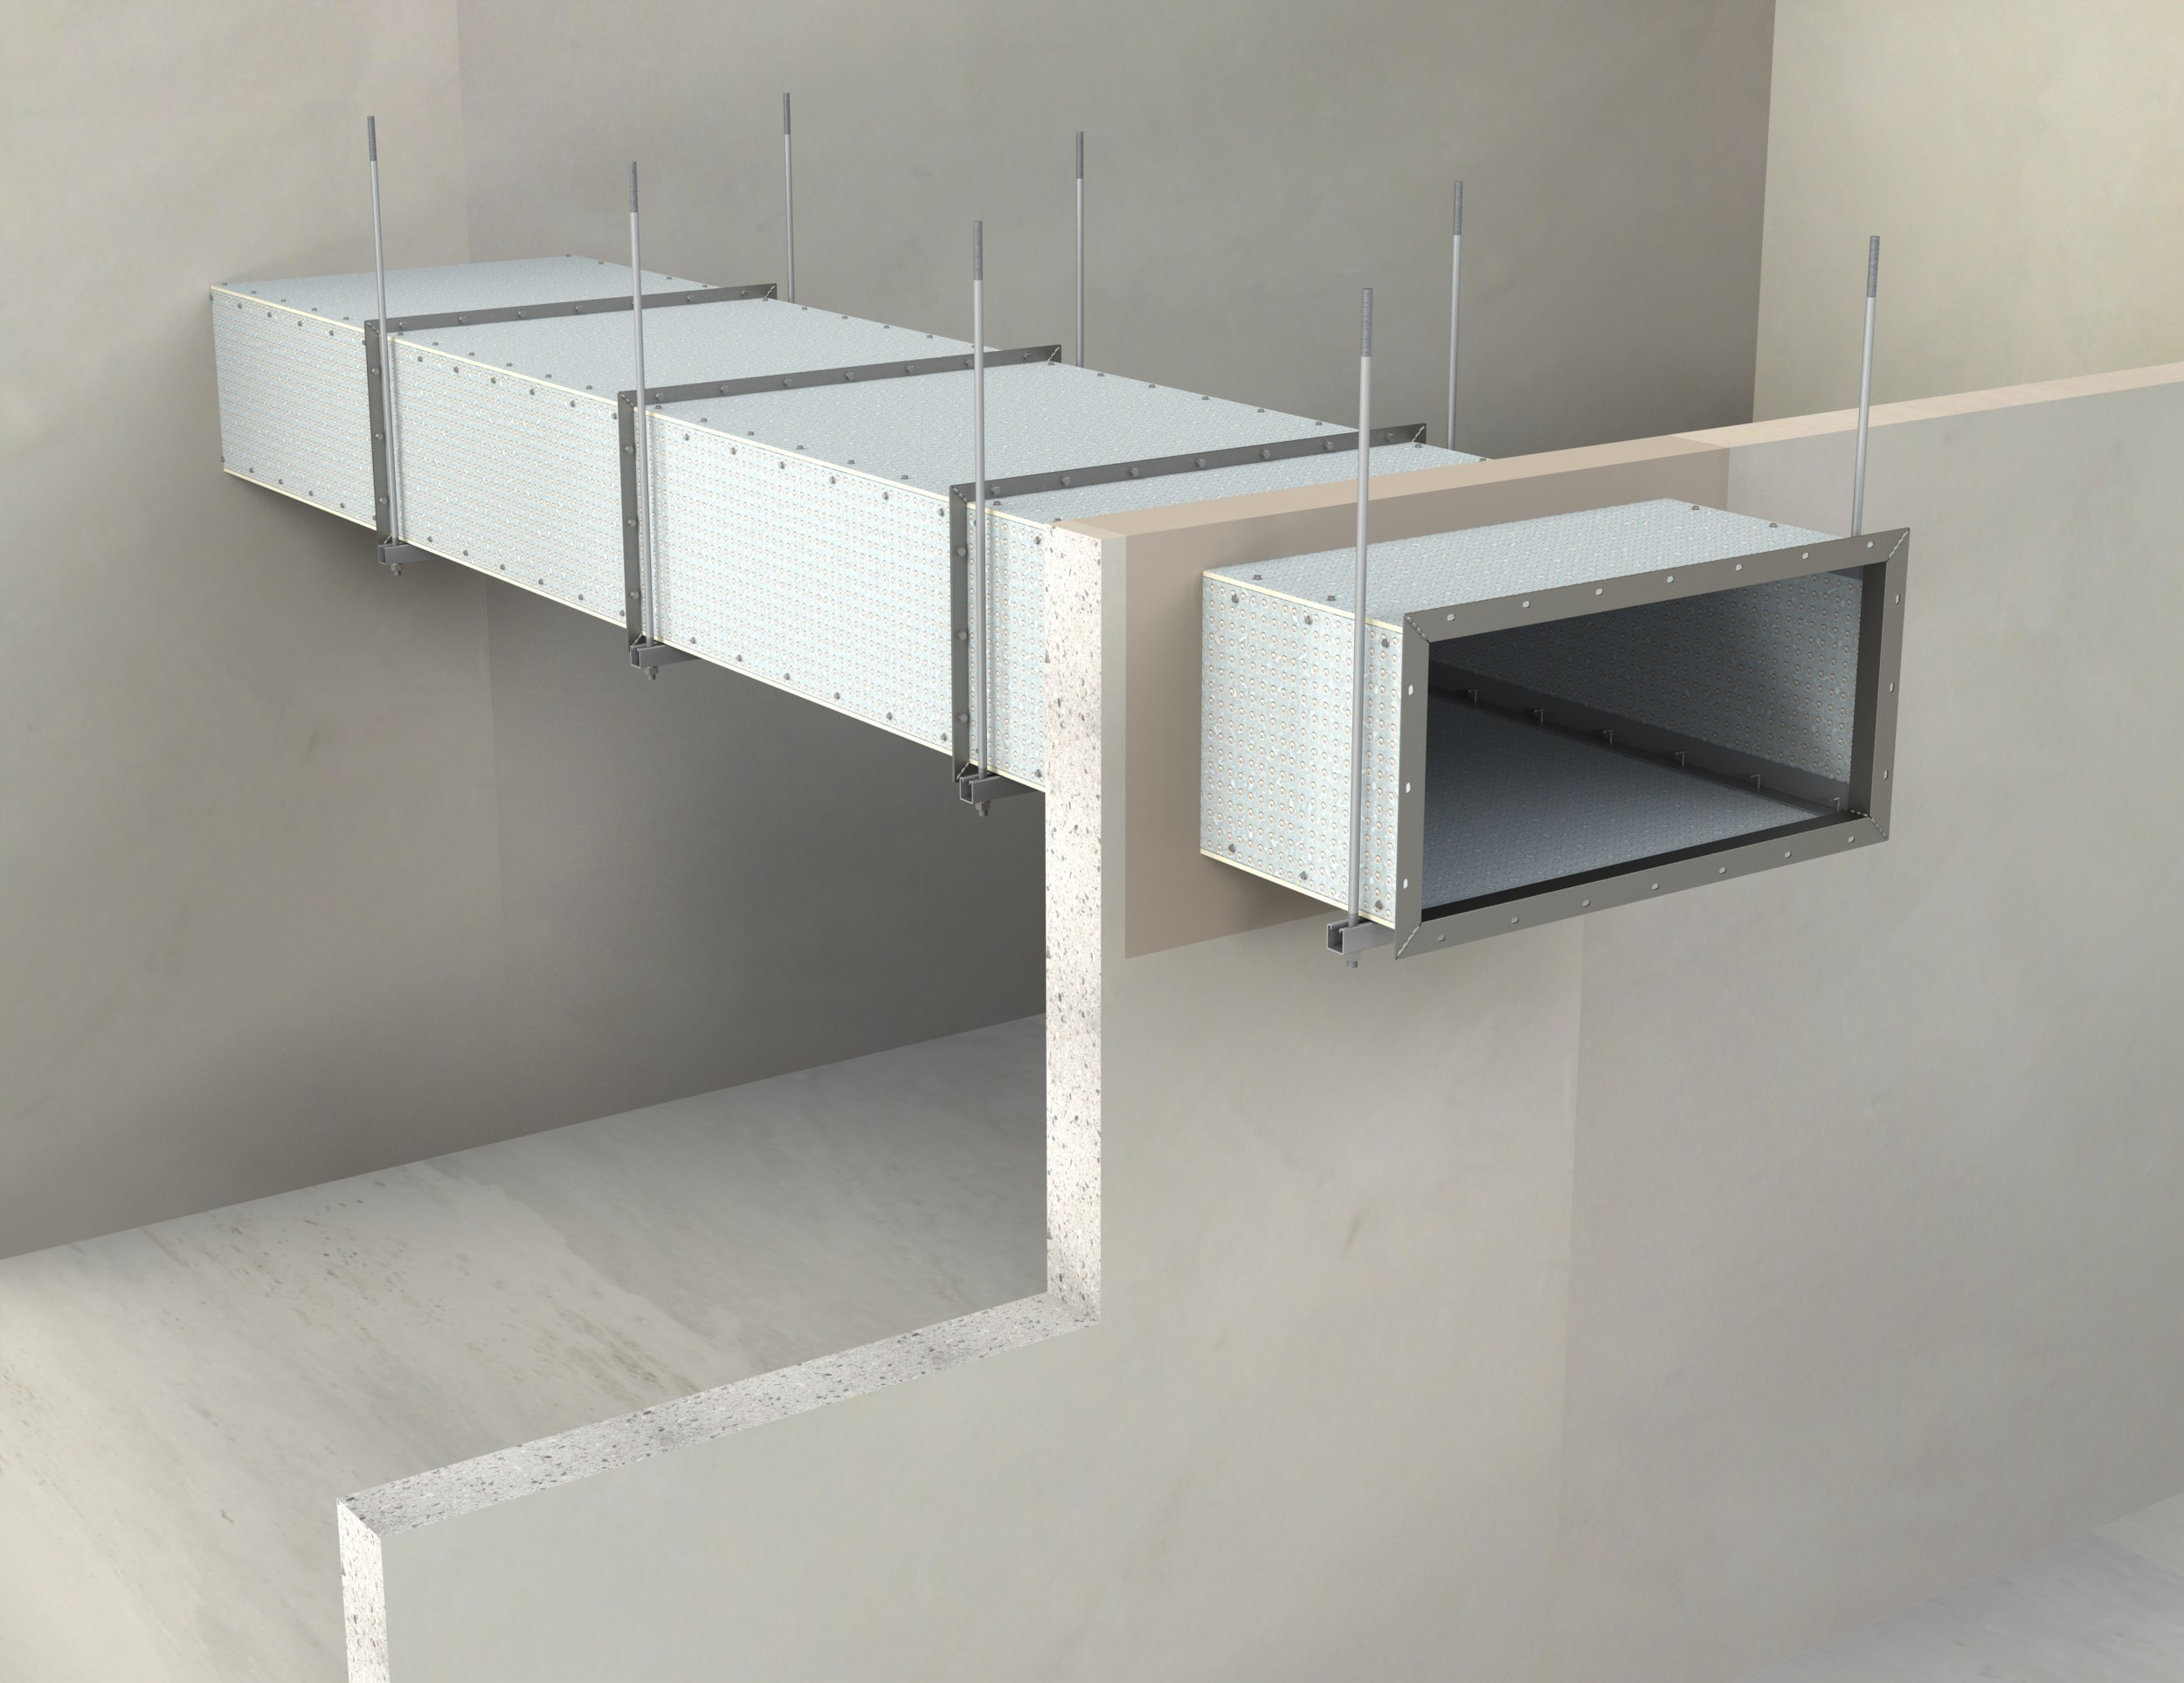 Ventilation & Smoke Ducts (High Impact Resistance)